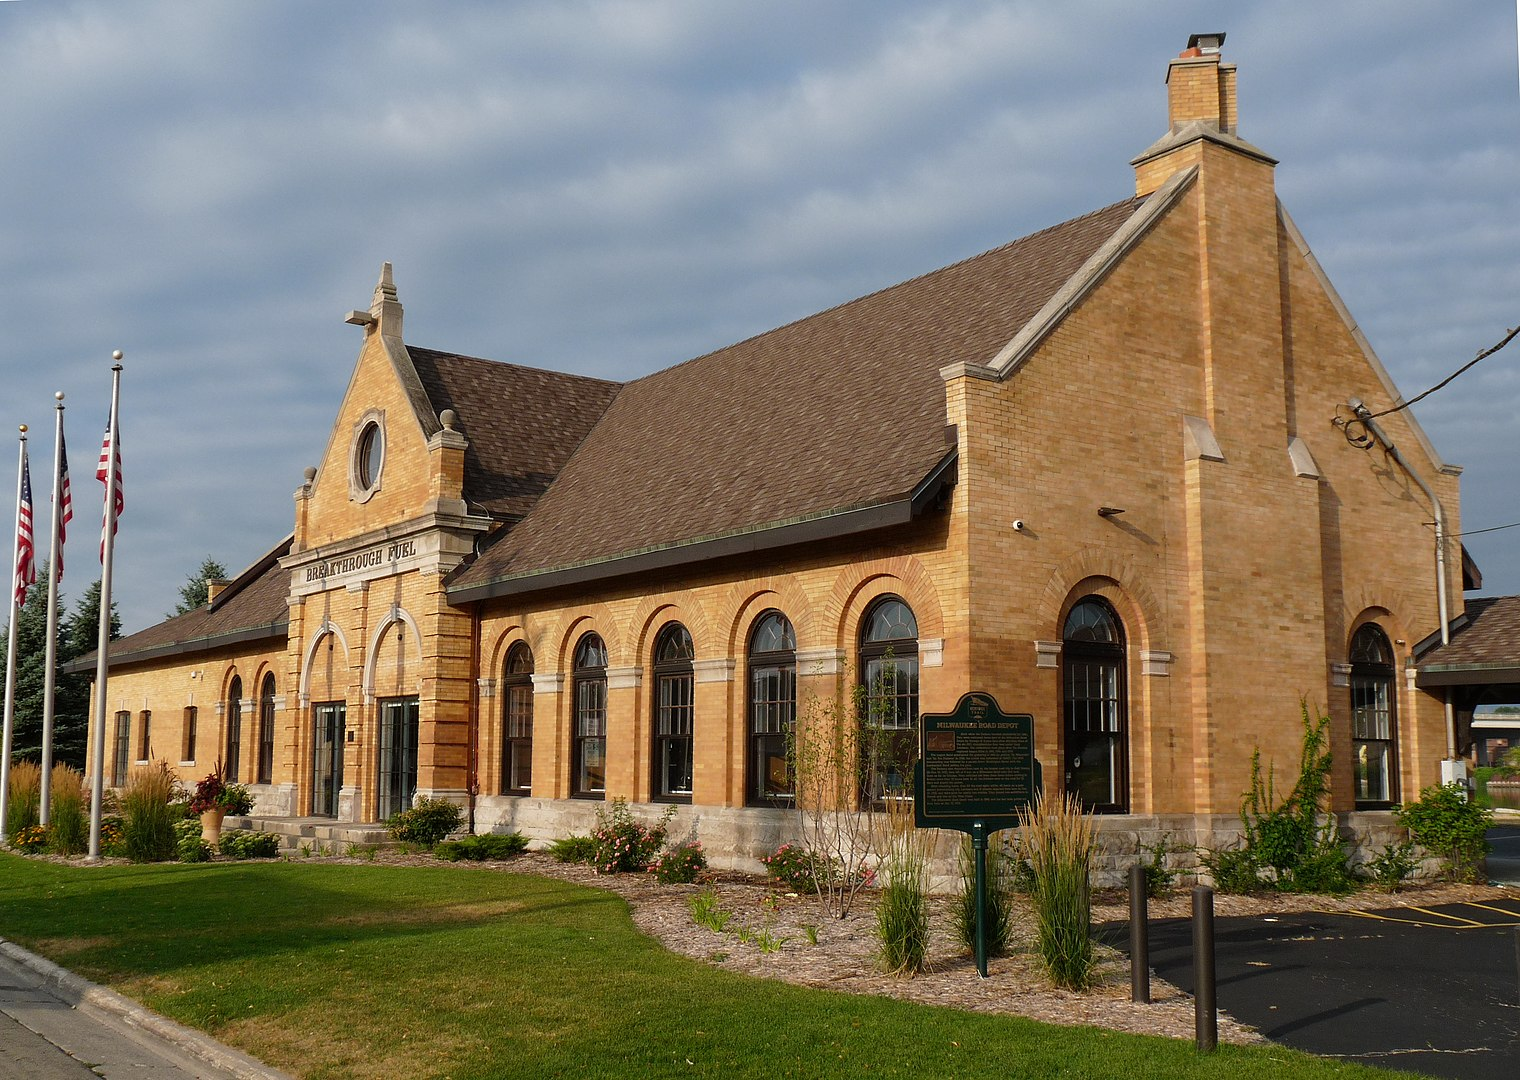 2012 photo of the Milwaukee Road Depot in Green Bay, Wisconsin was built in 1898 in Flemish Renaissance Revival style.